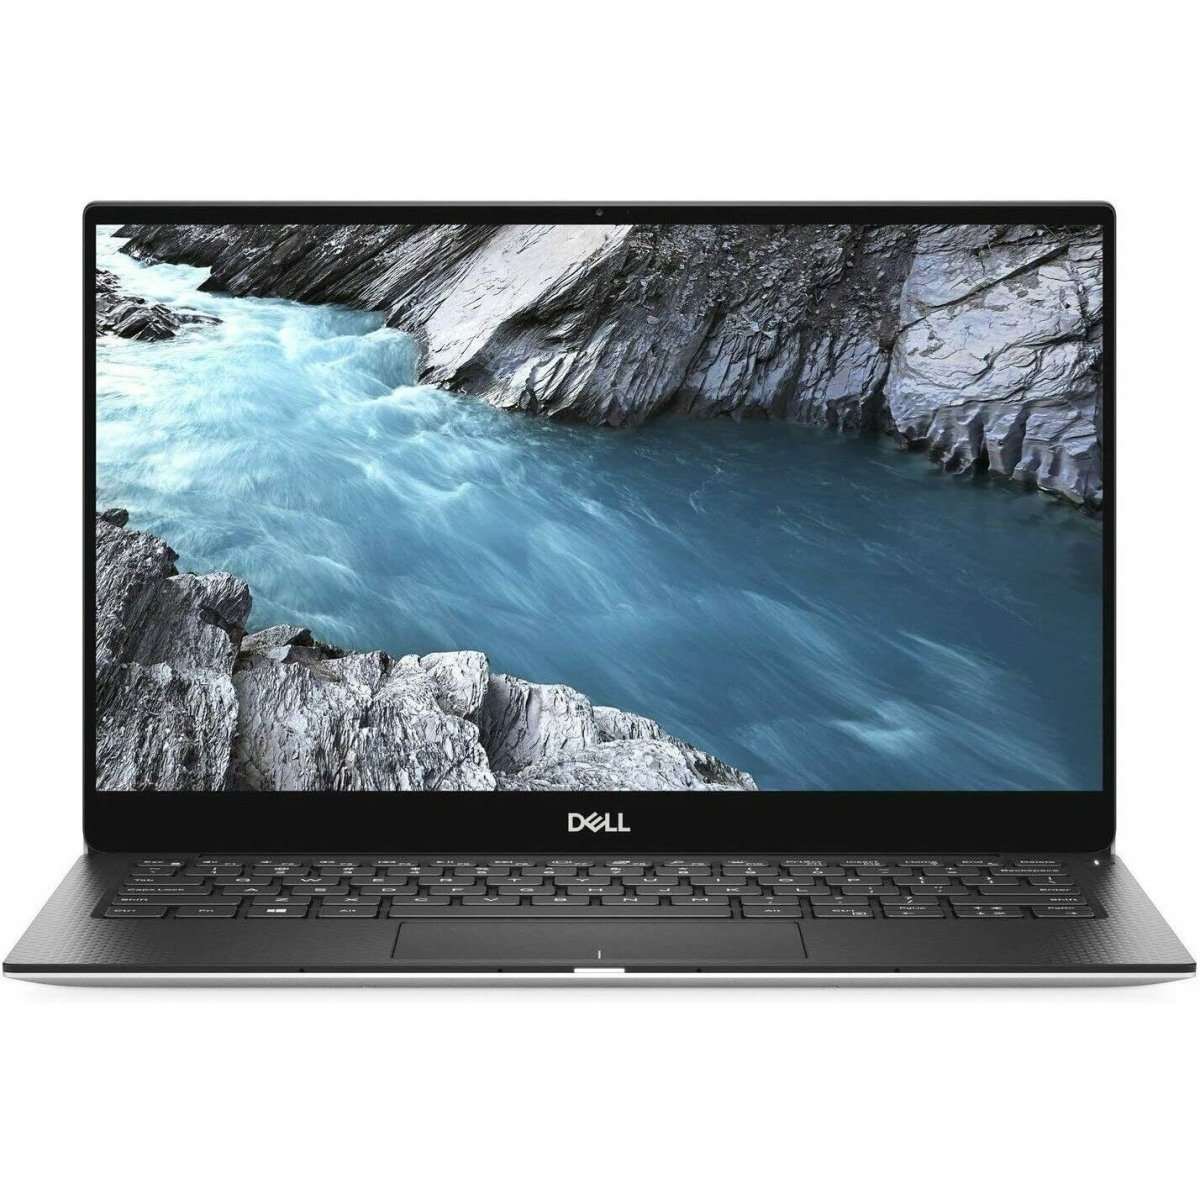 "Dell XPS 9380 13.3"" Laptop - Fix Or Cell Now Device Shop"